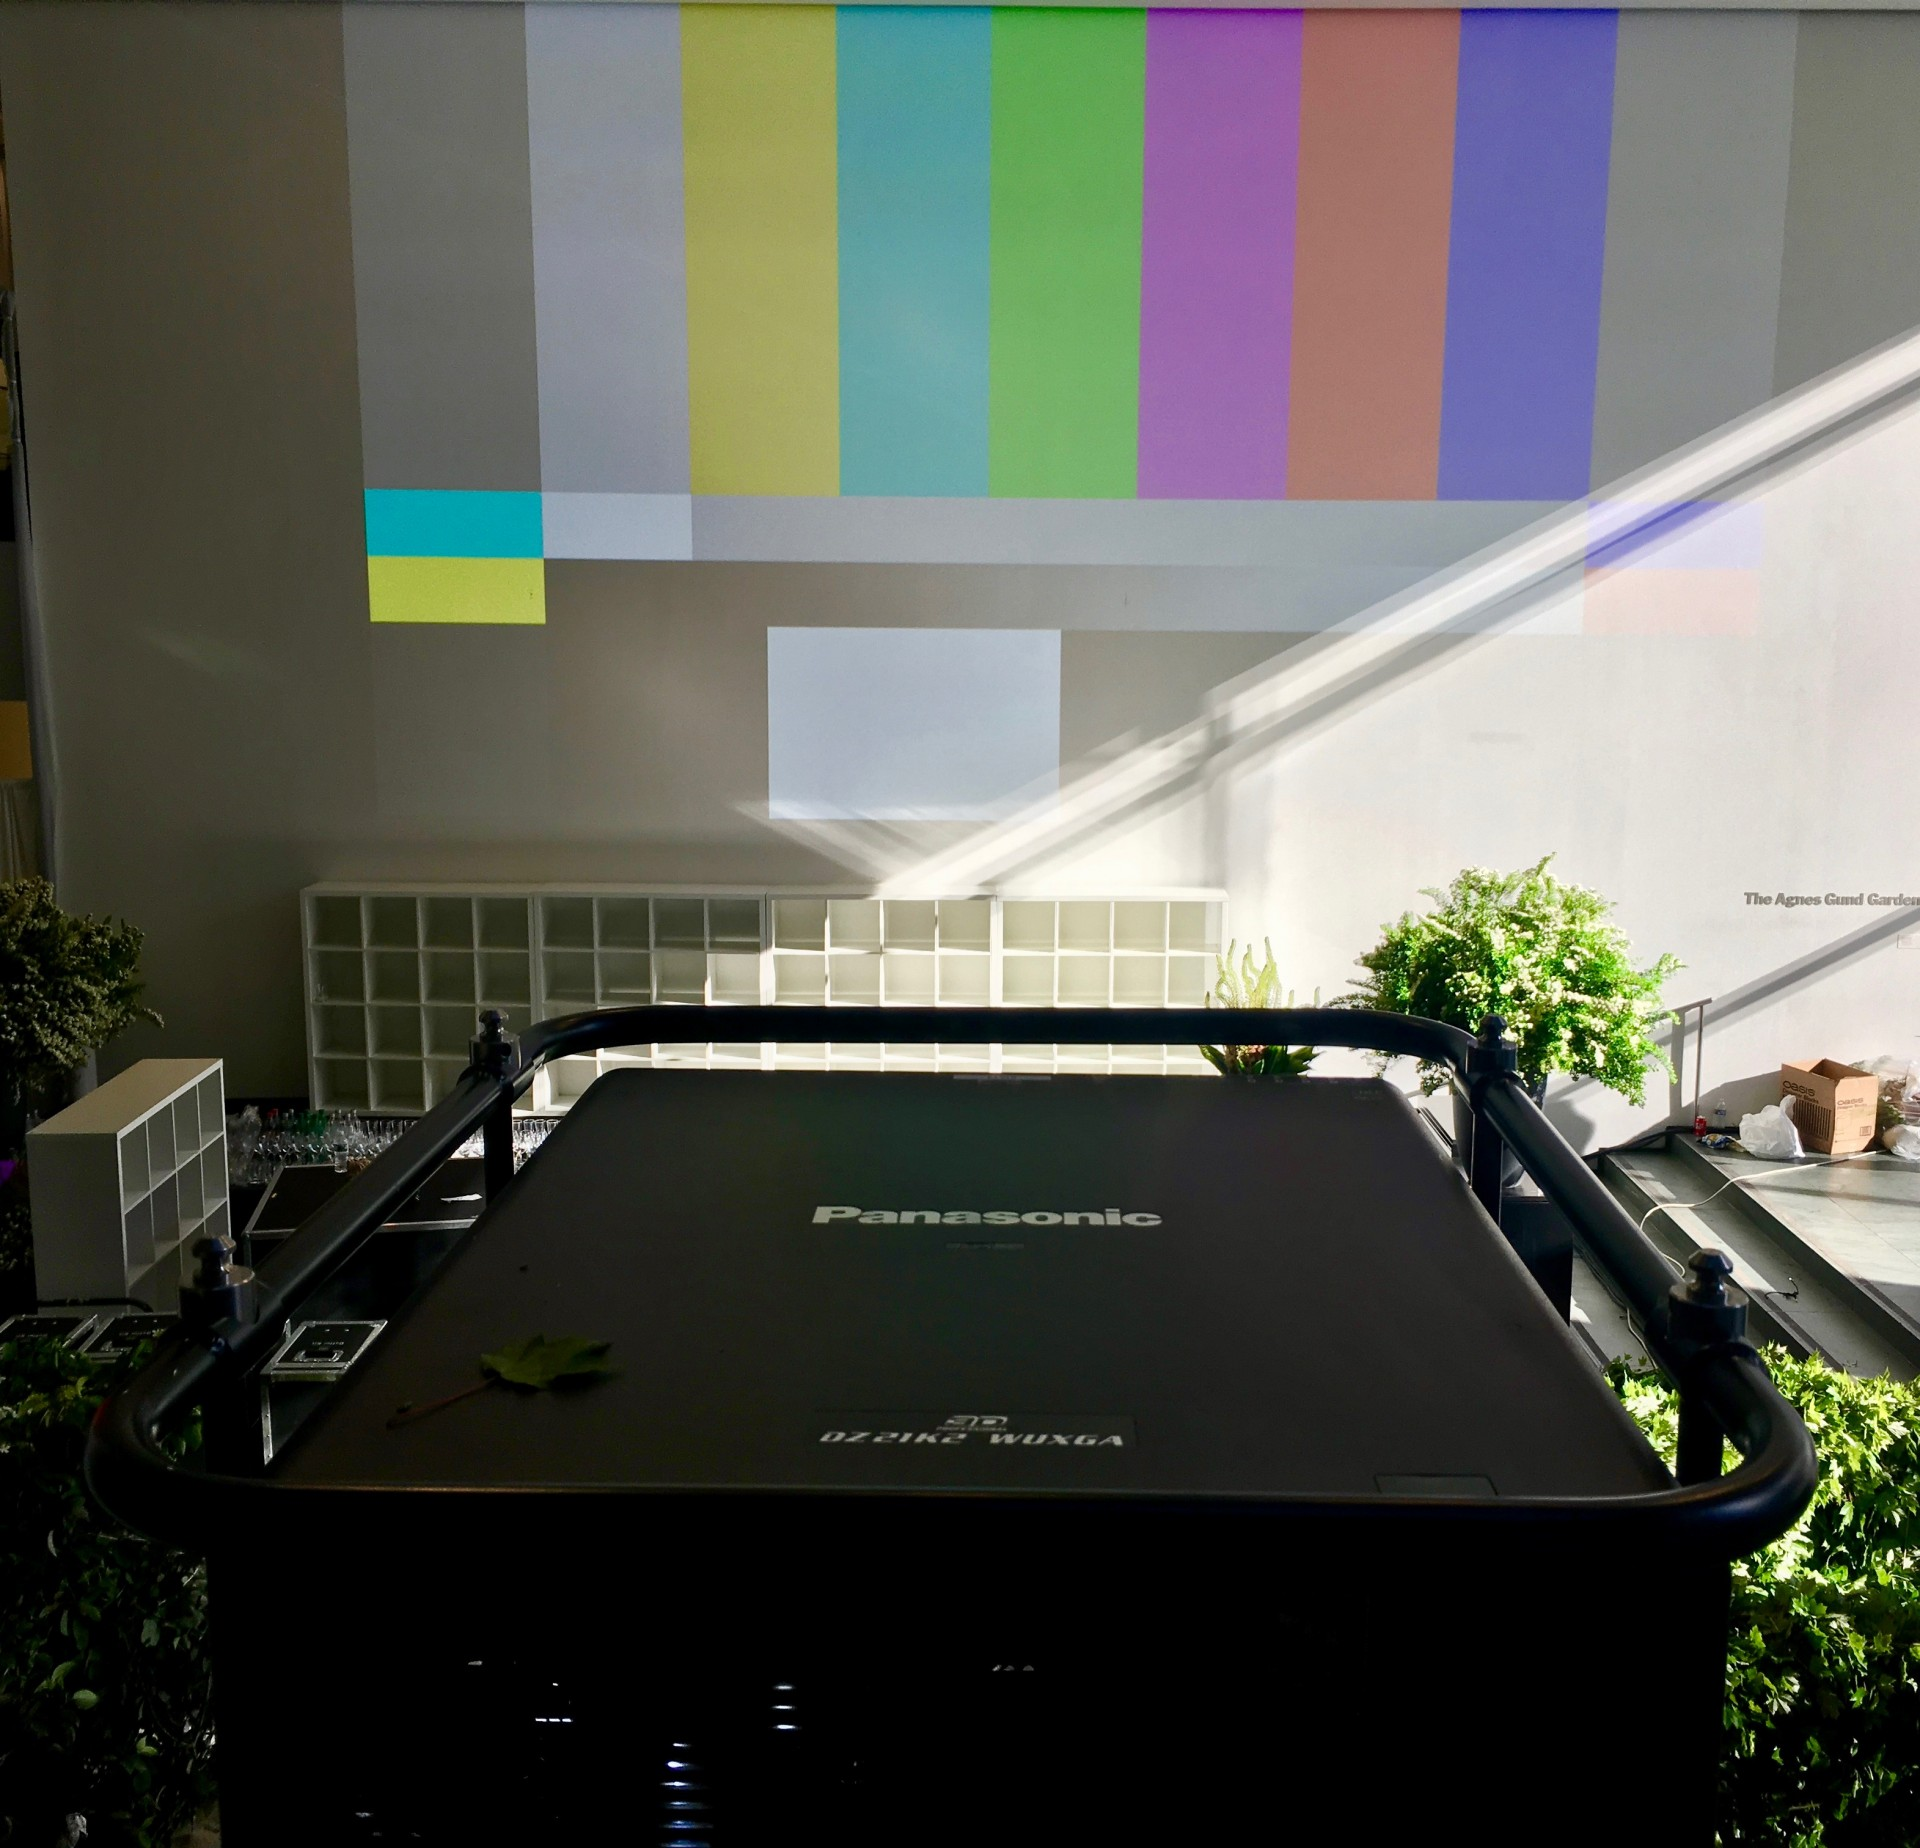 A pair of 21K projectors unable to overpower daylight